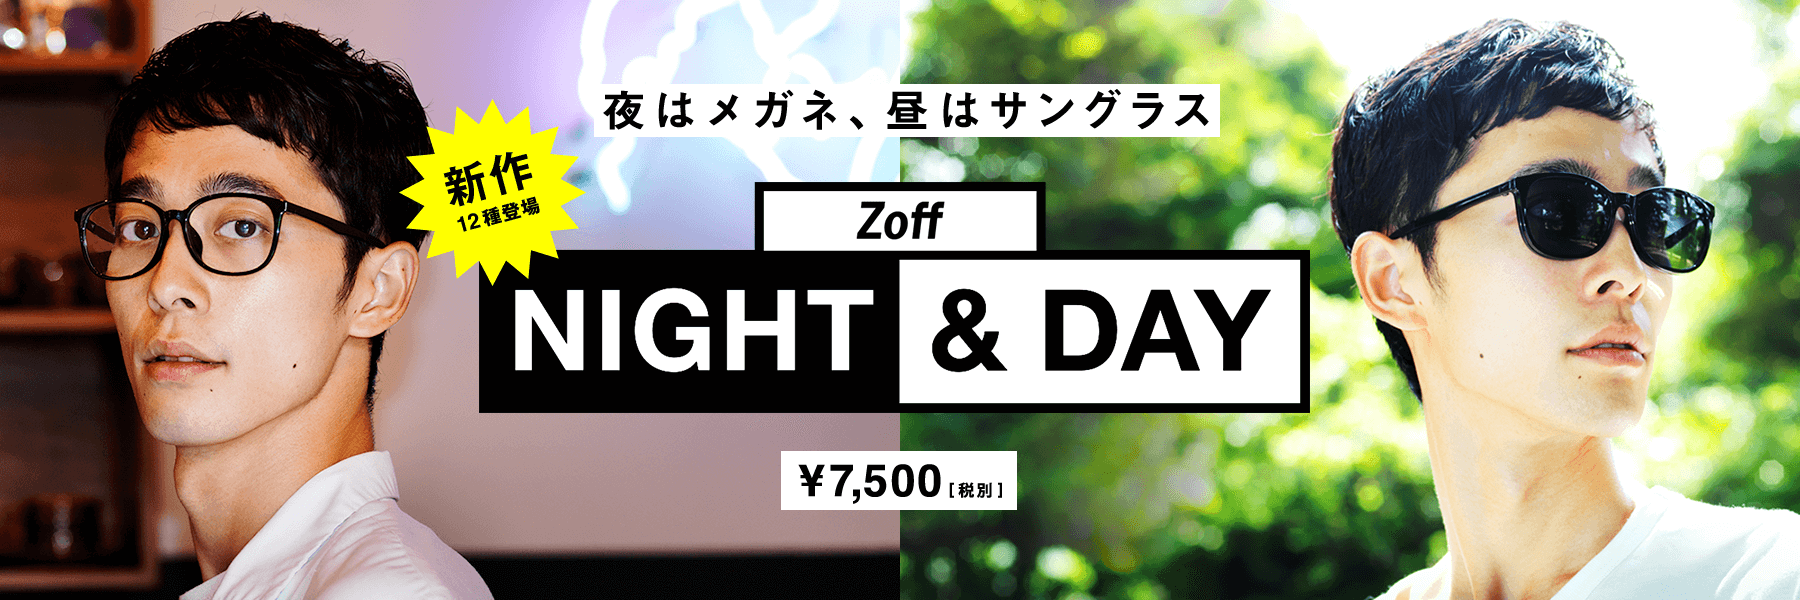 Zoff NIGHT & DAY